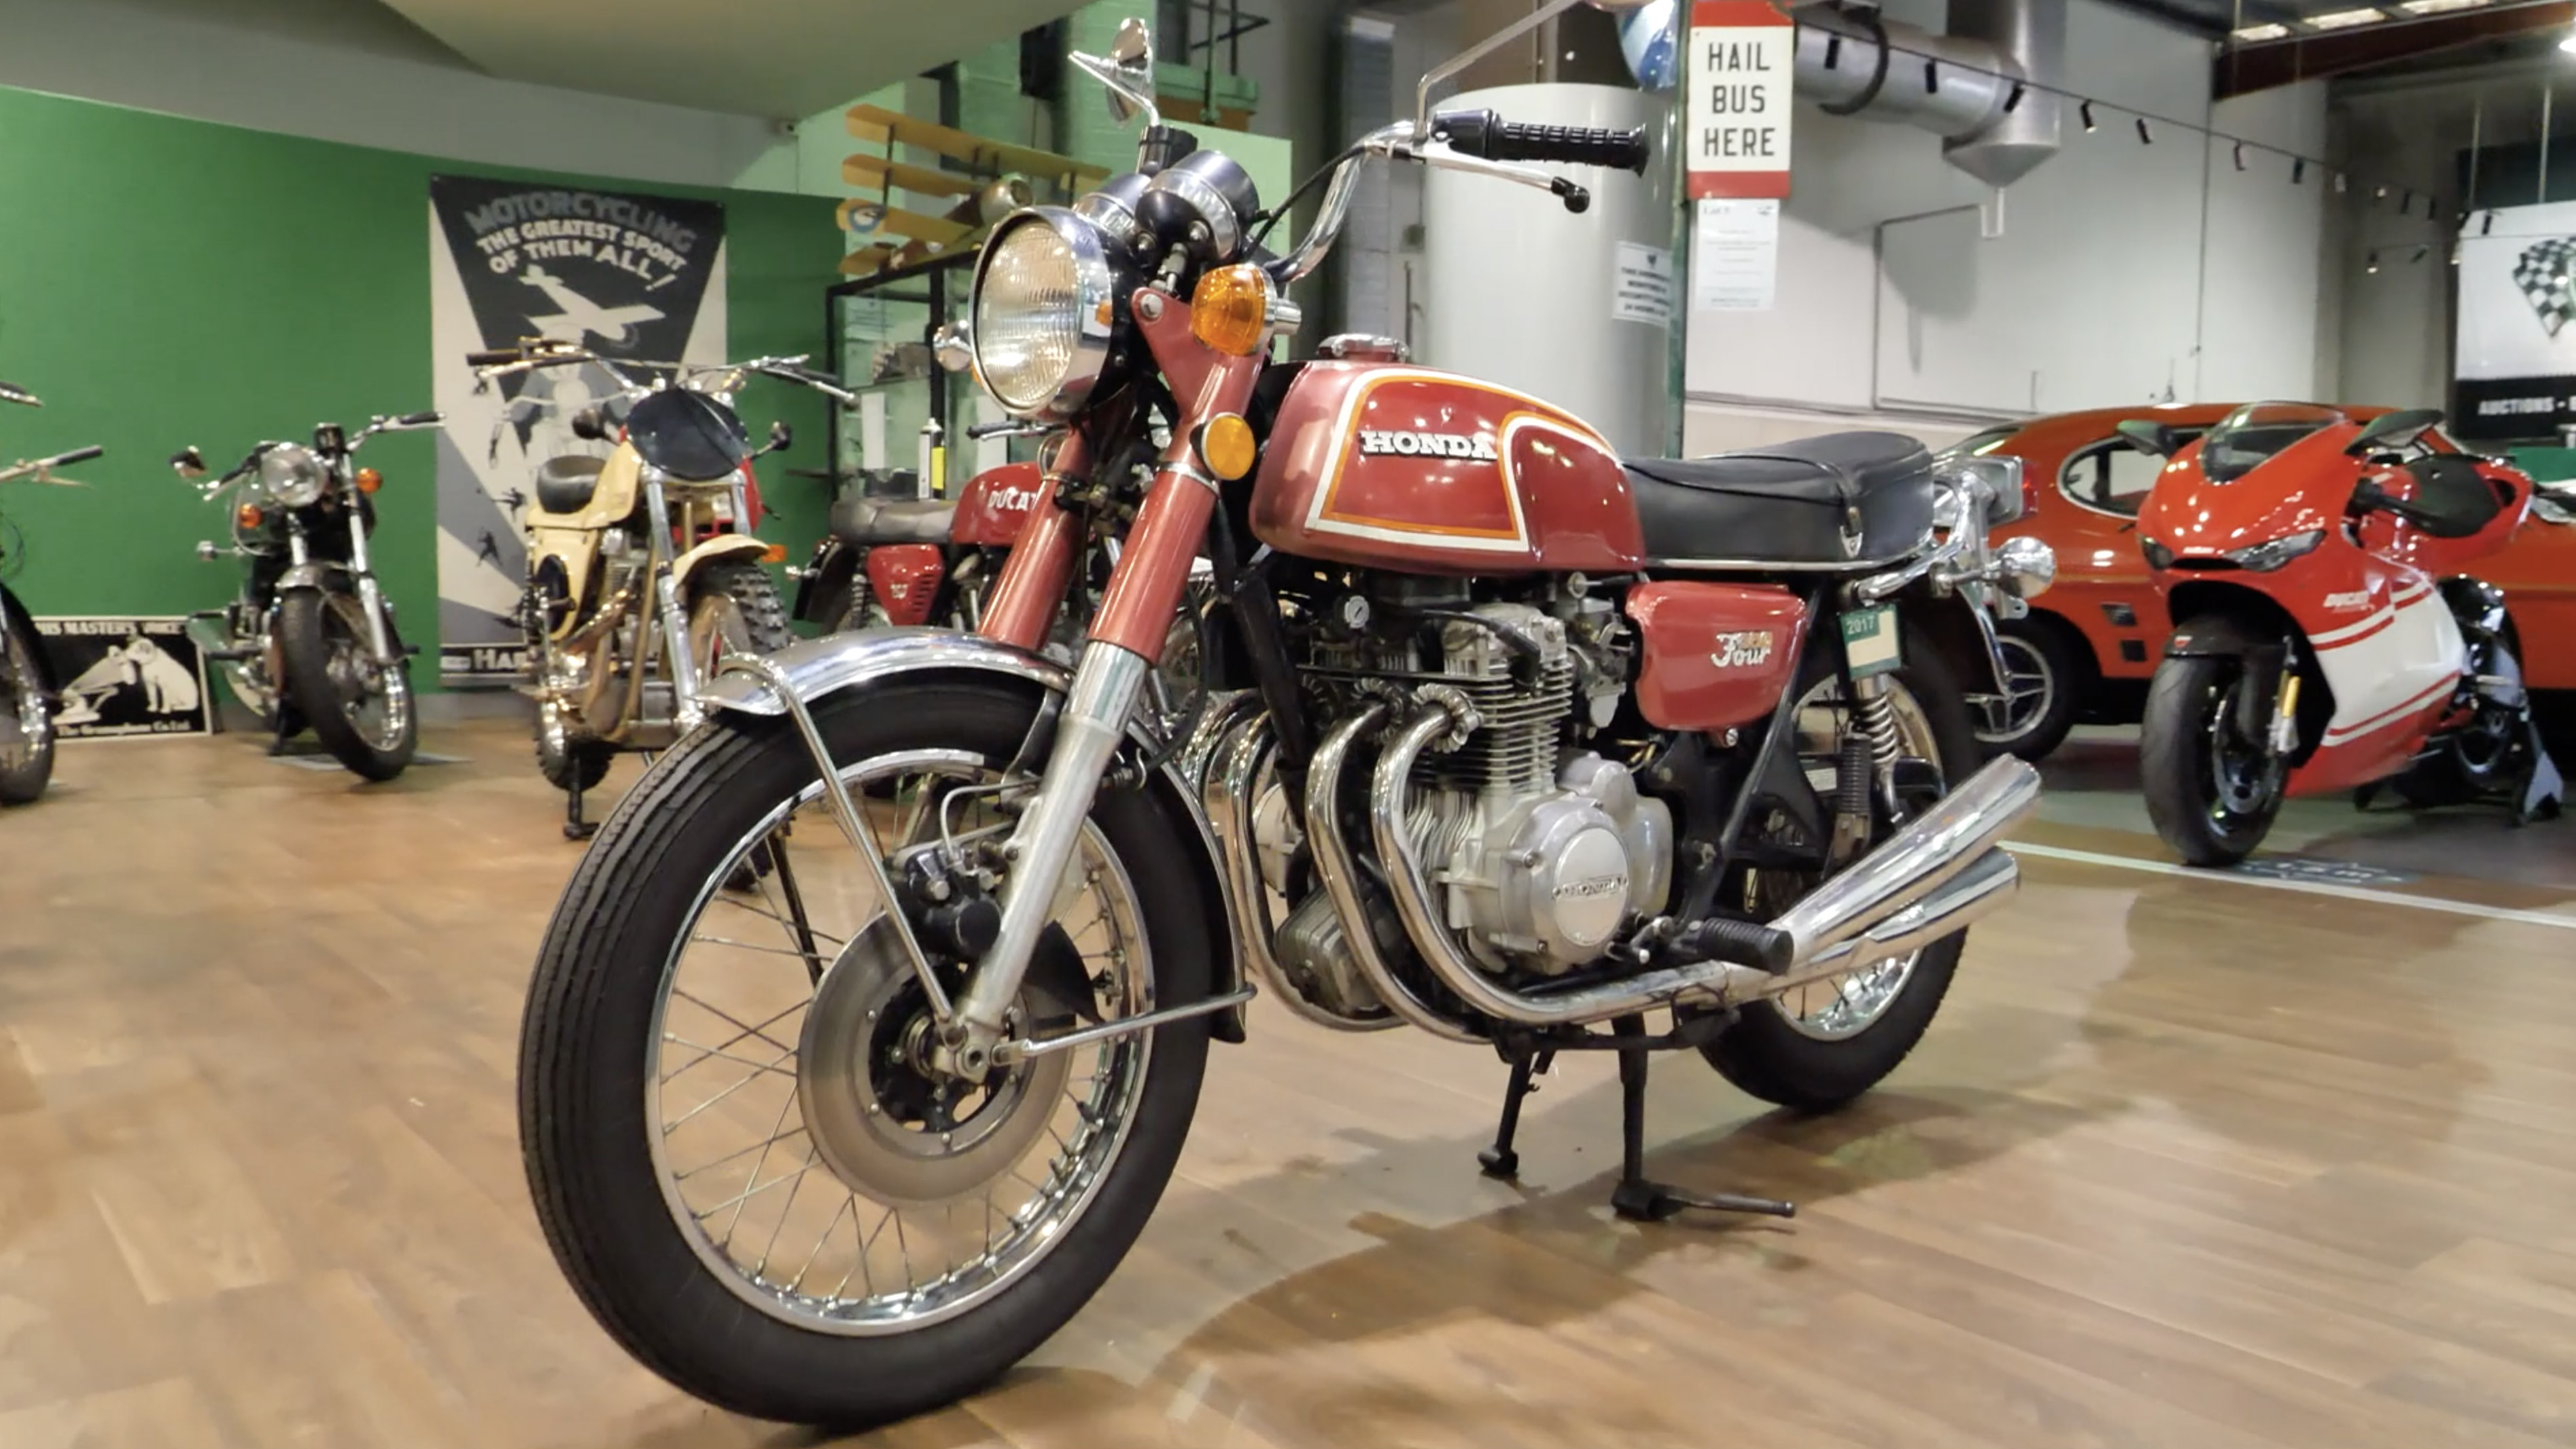 1972 Honda CB350/4 Solo Motorcycle - 2020 Shannons Spring Timed Online Auction